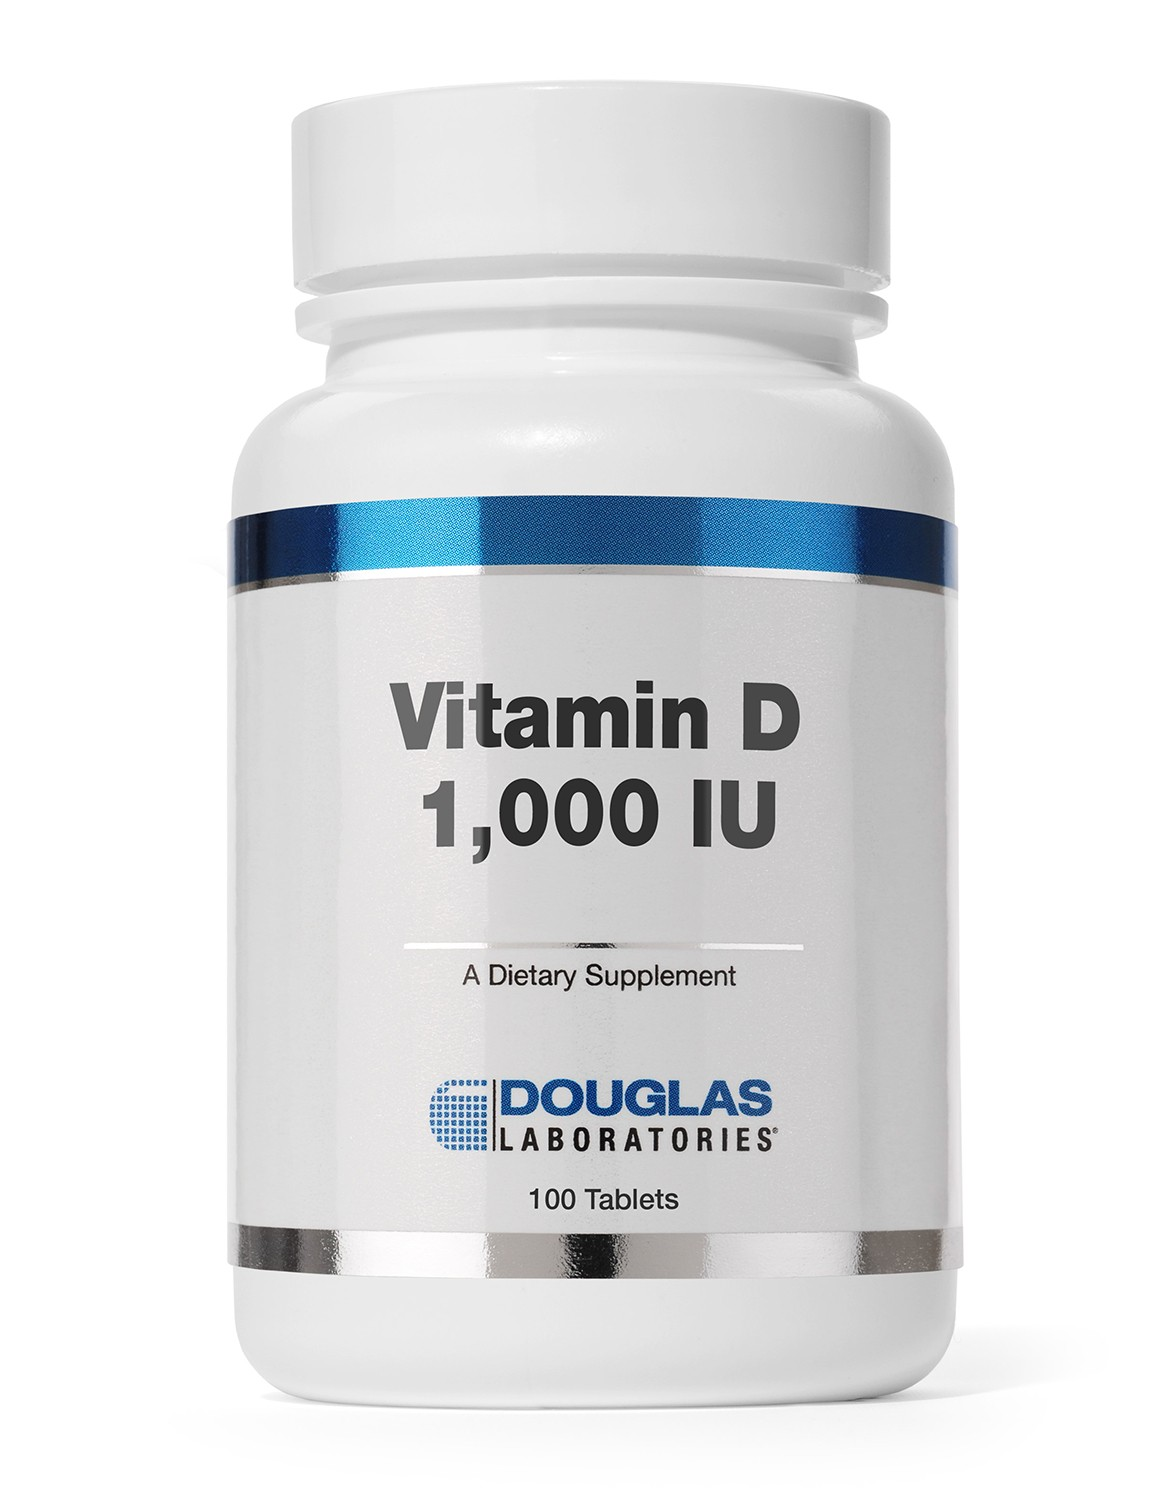 Vitamine D 1000 IU (100 tabletten) Douglas Laboratories